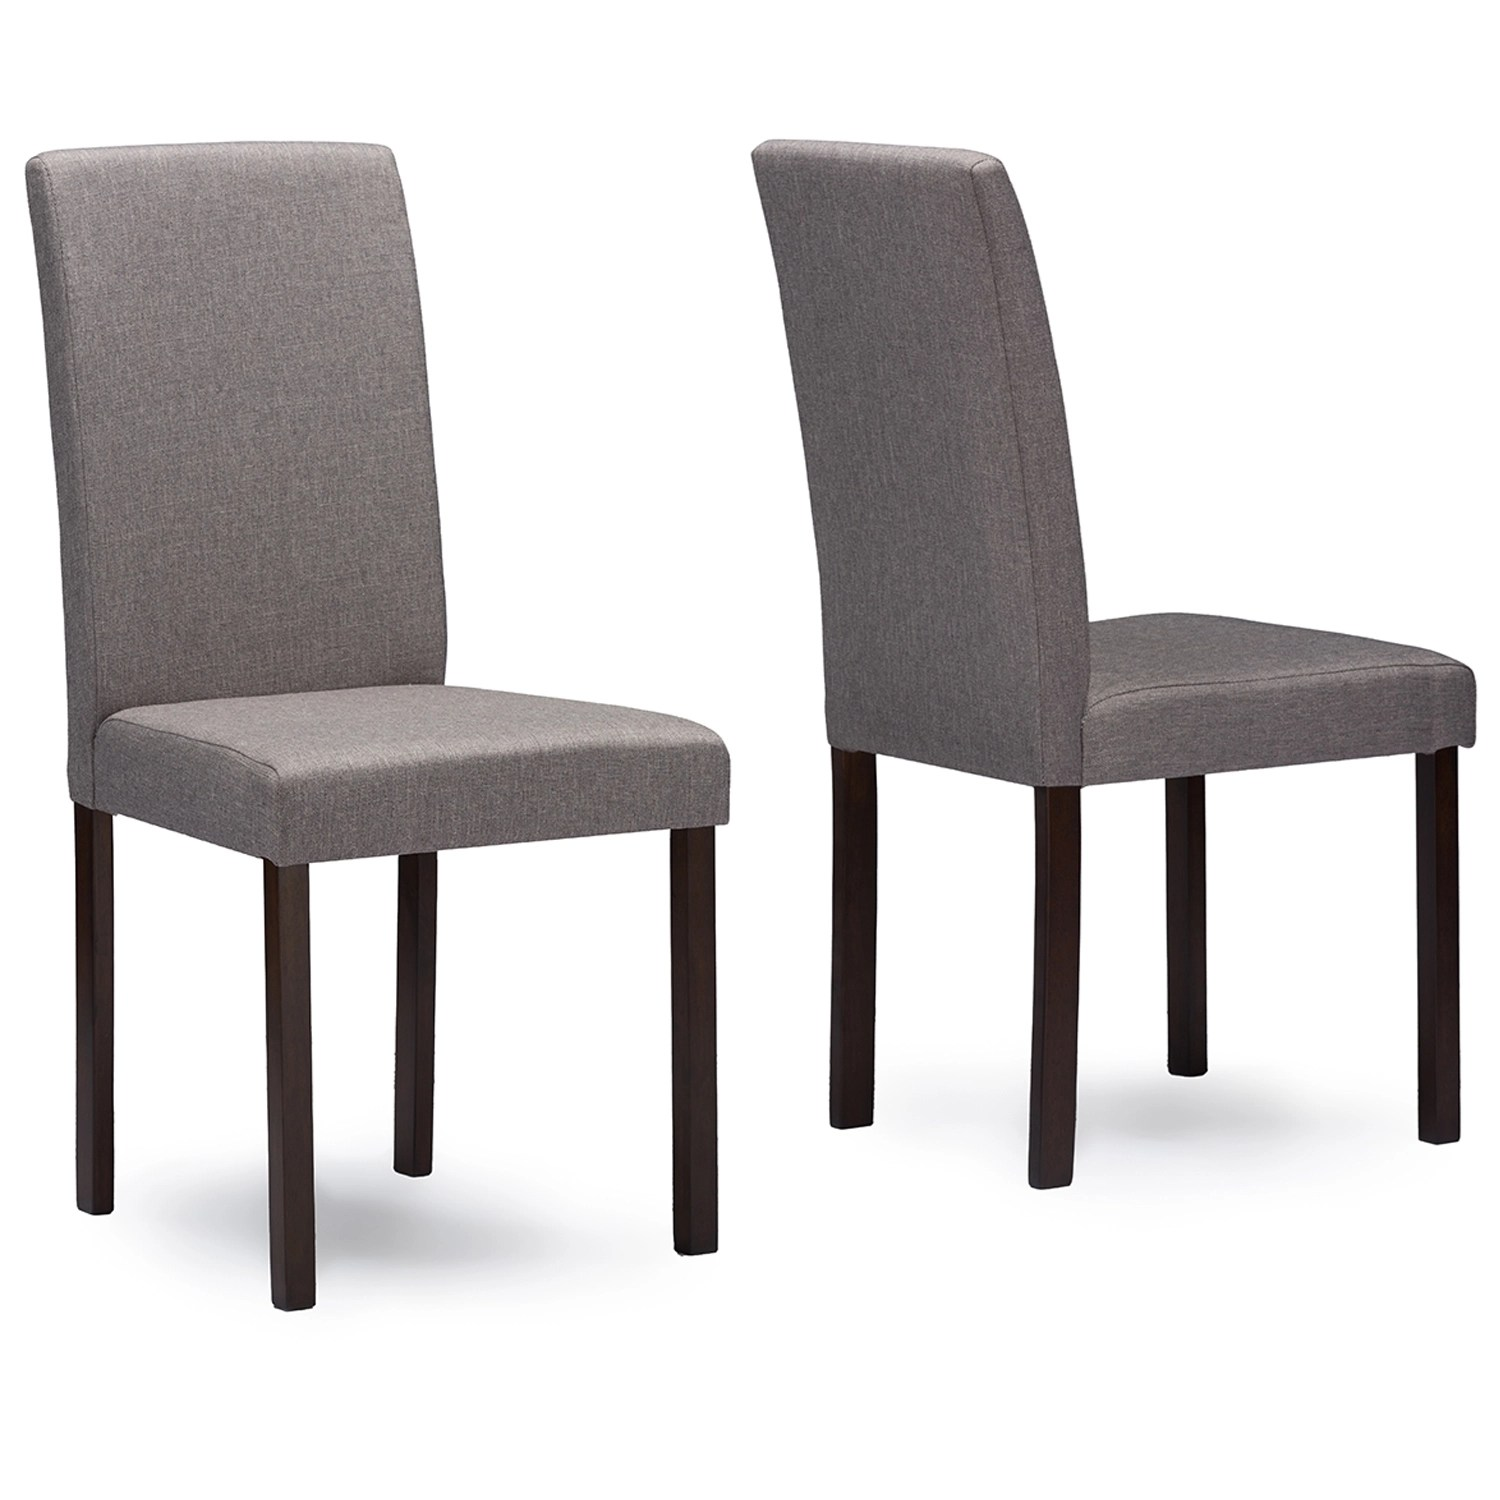 dining chairs fabric wingback club chair recliner wholesale room furniture baxton studio andrew contemporary espresso wood grey